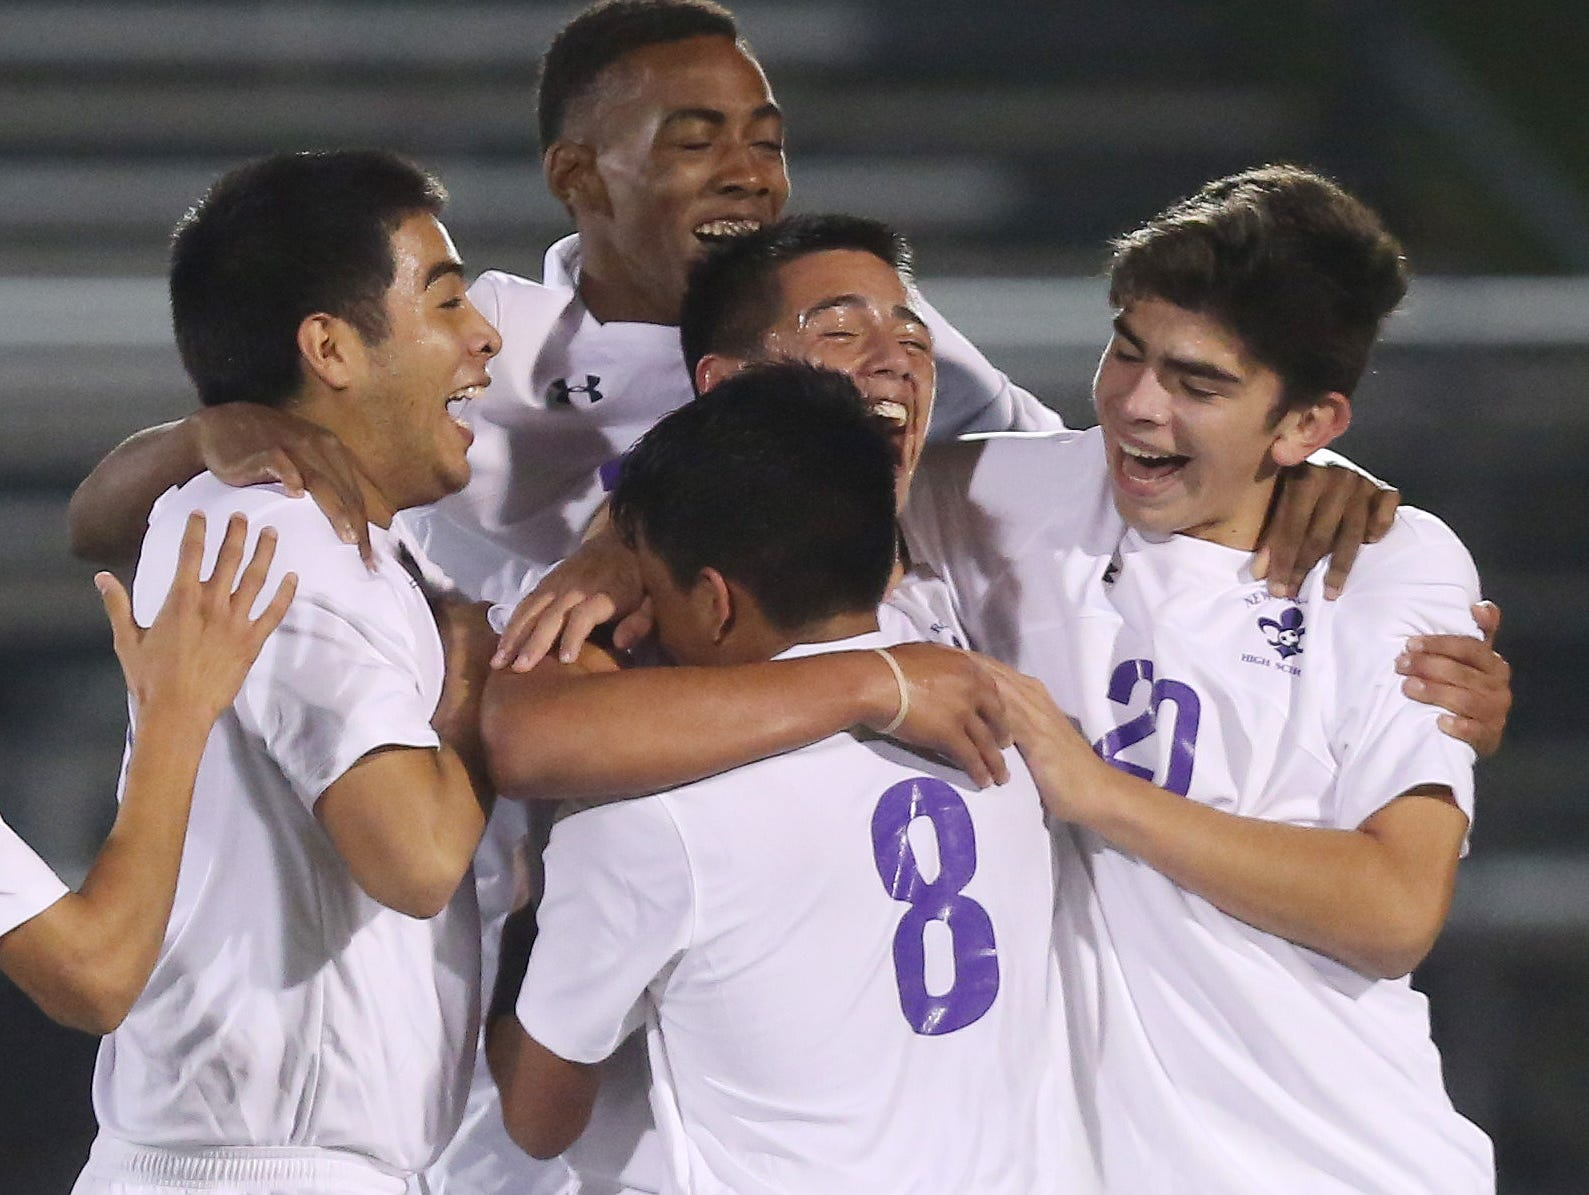 New Rochelle's Oscar Espinoza (13) celebrates with teammates after scoring New Rochelle's first goal against Ithaca during the boys soccer regional semifinal at Lakeland High School in Shrub Oak Nov. 2, 2016